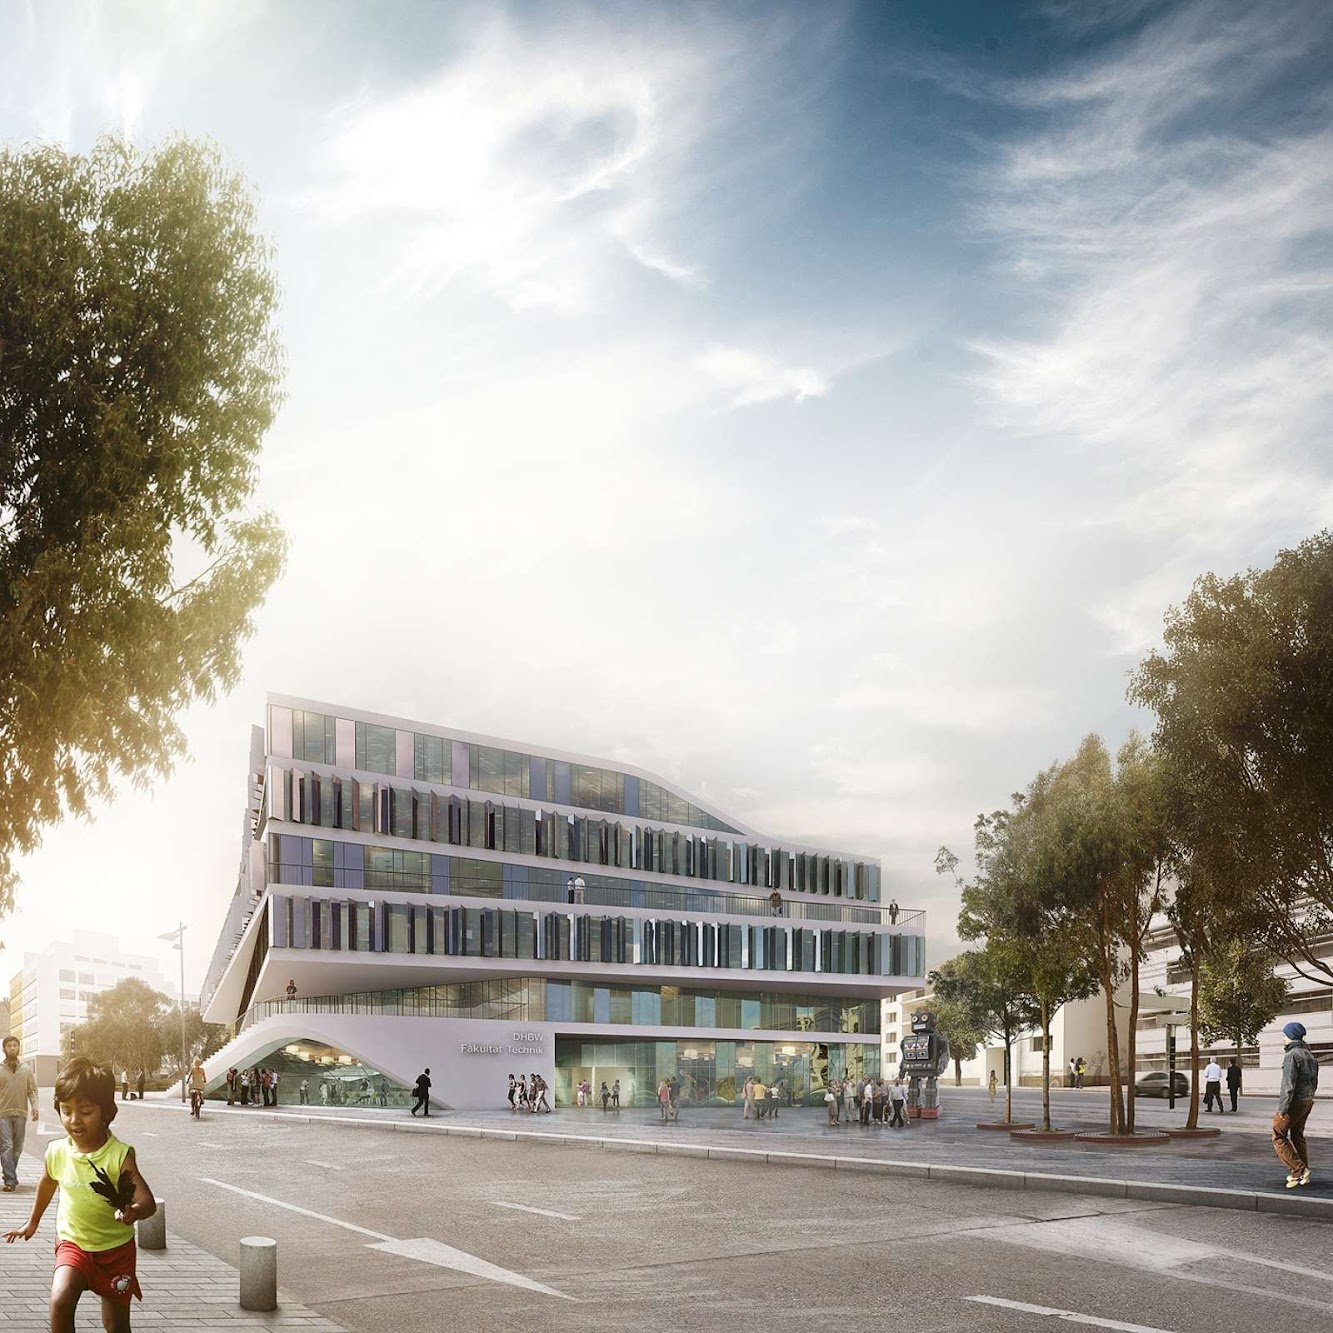 Stoccarda, Germania: 3Xn Wins University Building Competition